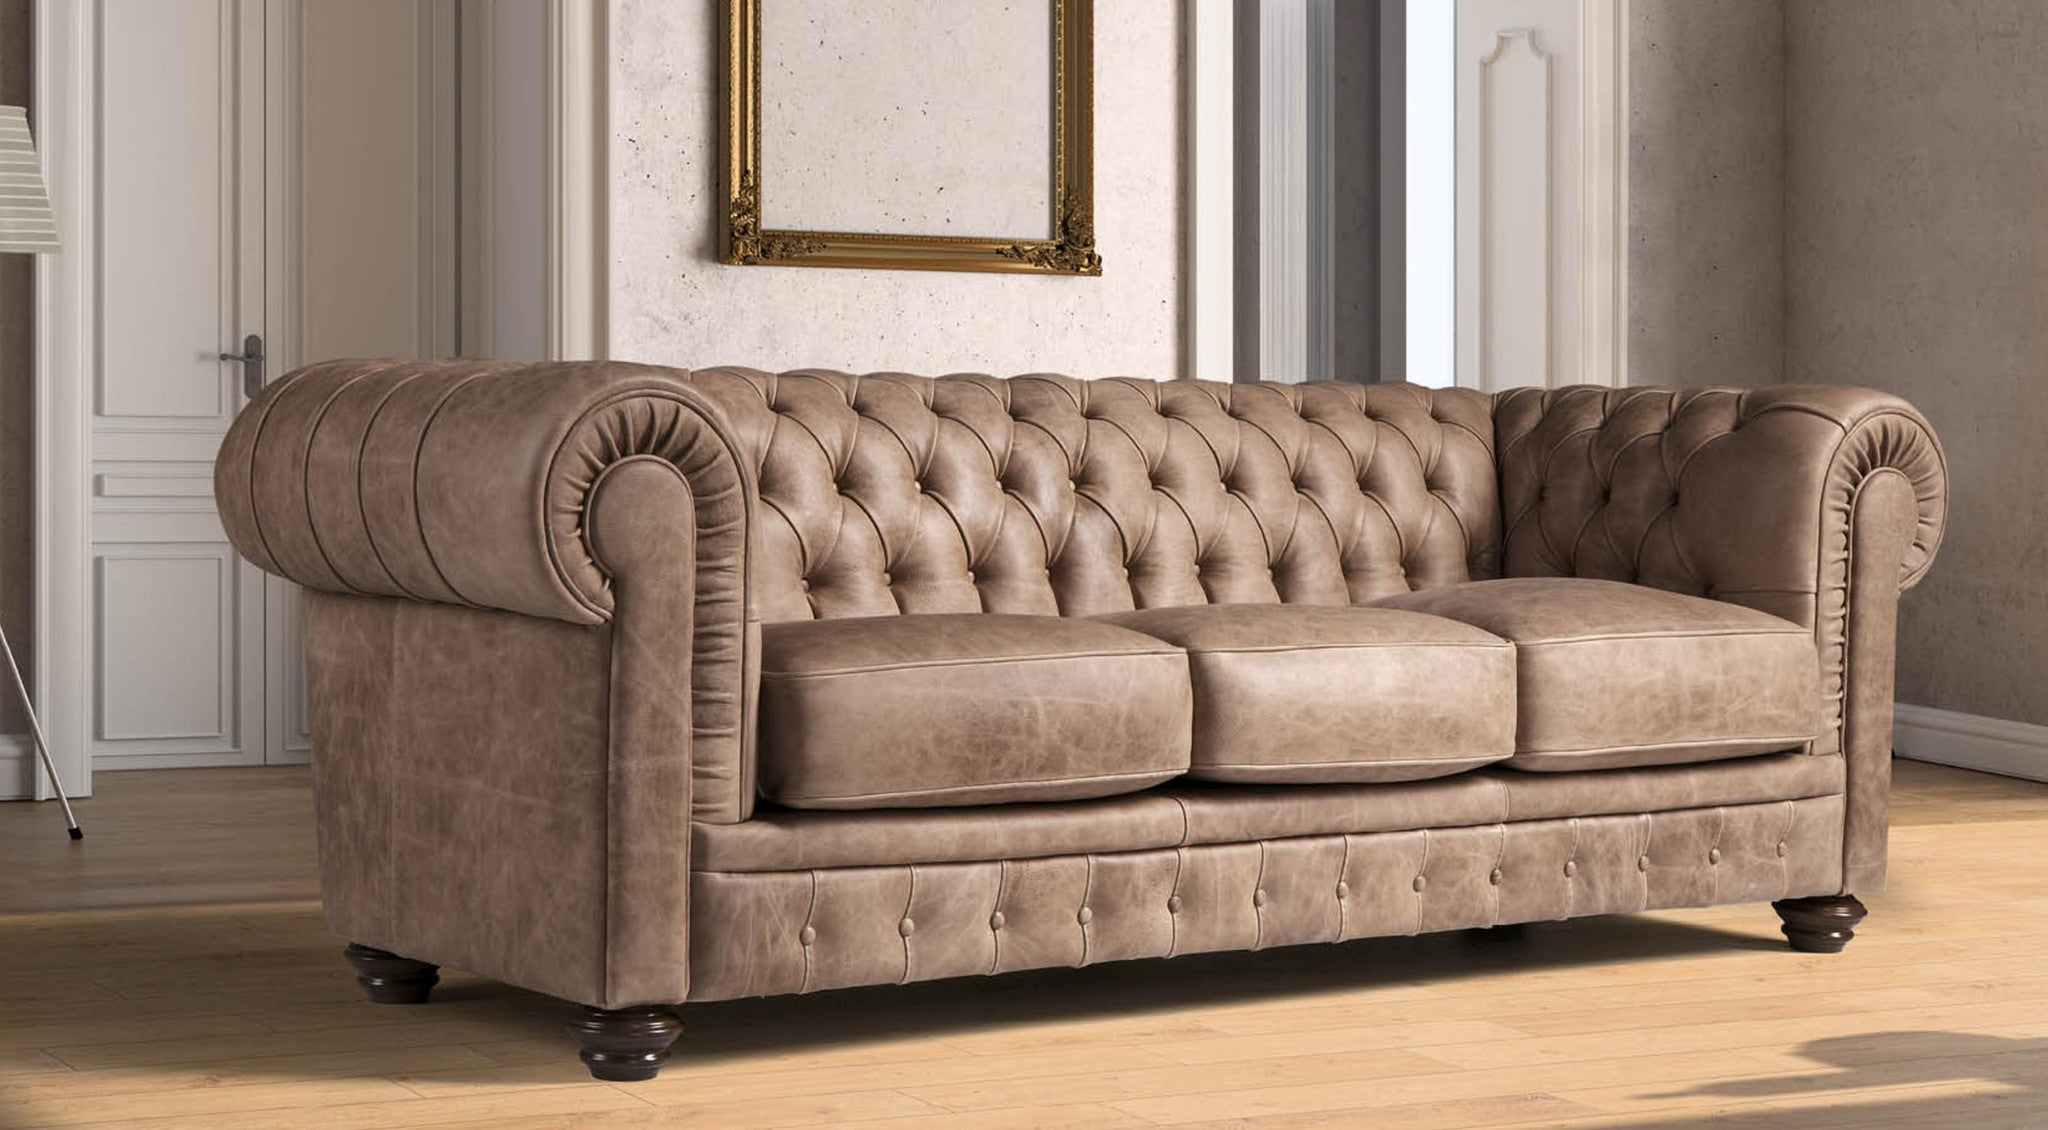 Italian Leather Sofas in Barlborough